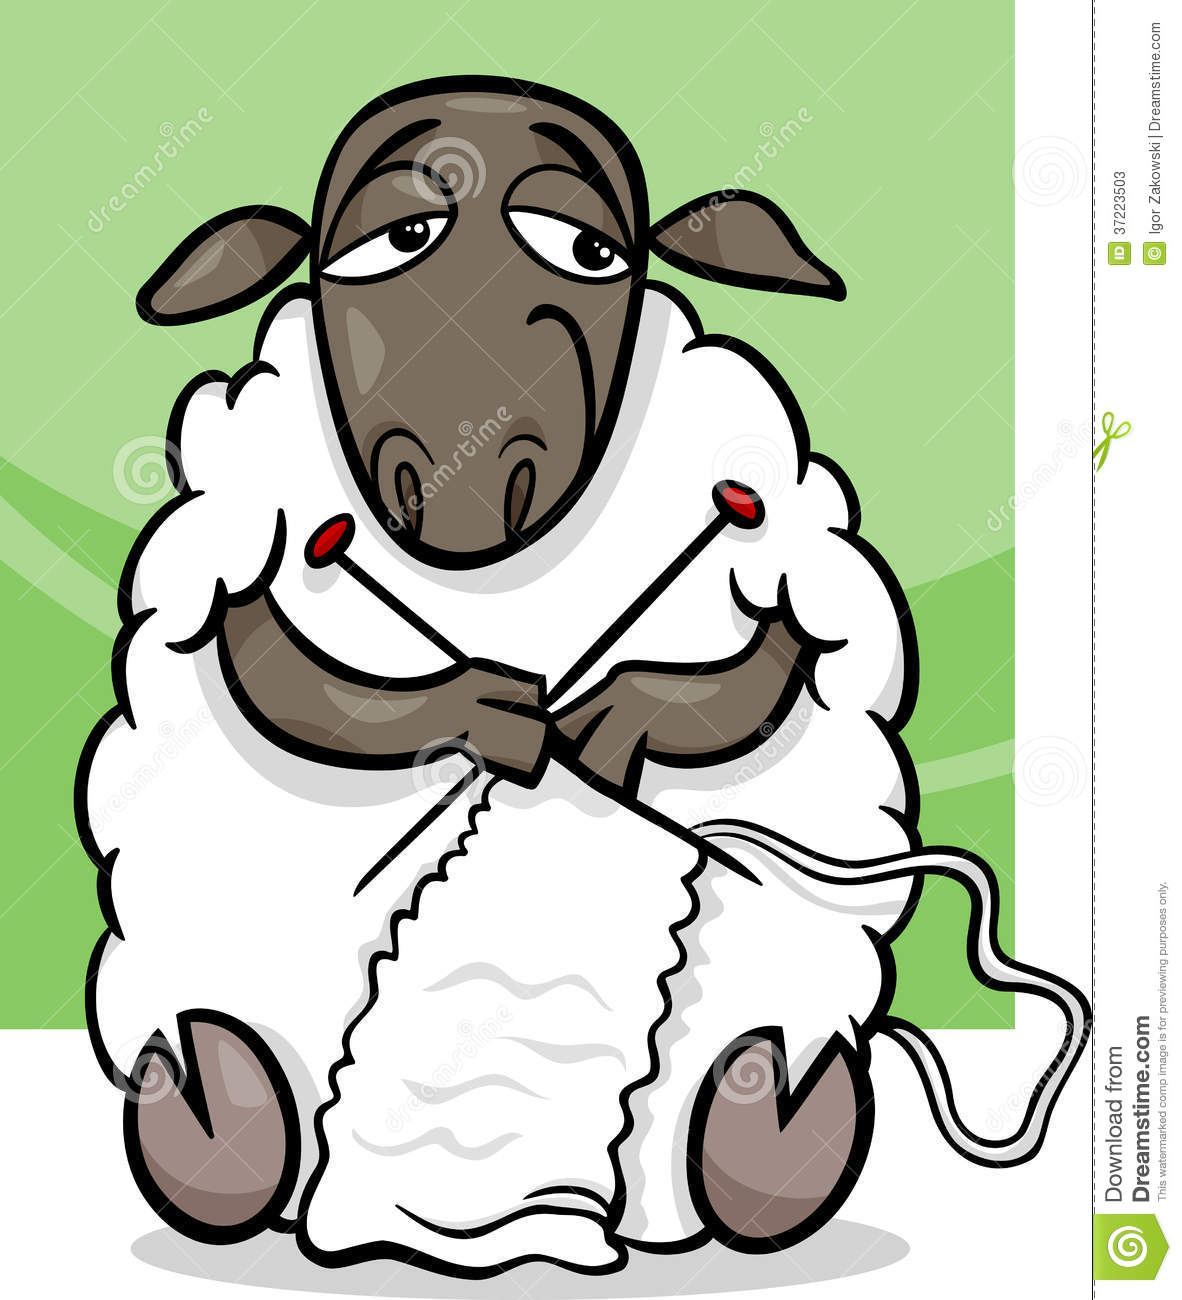 Knitting Cartoons Pictures : Knitting sheep cartoon illustration stock vector image